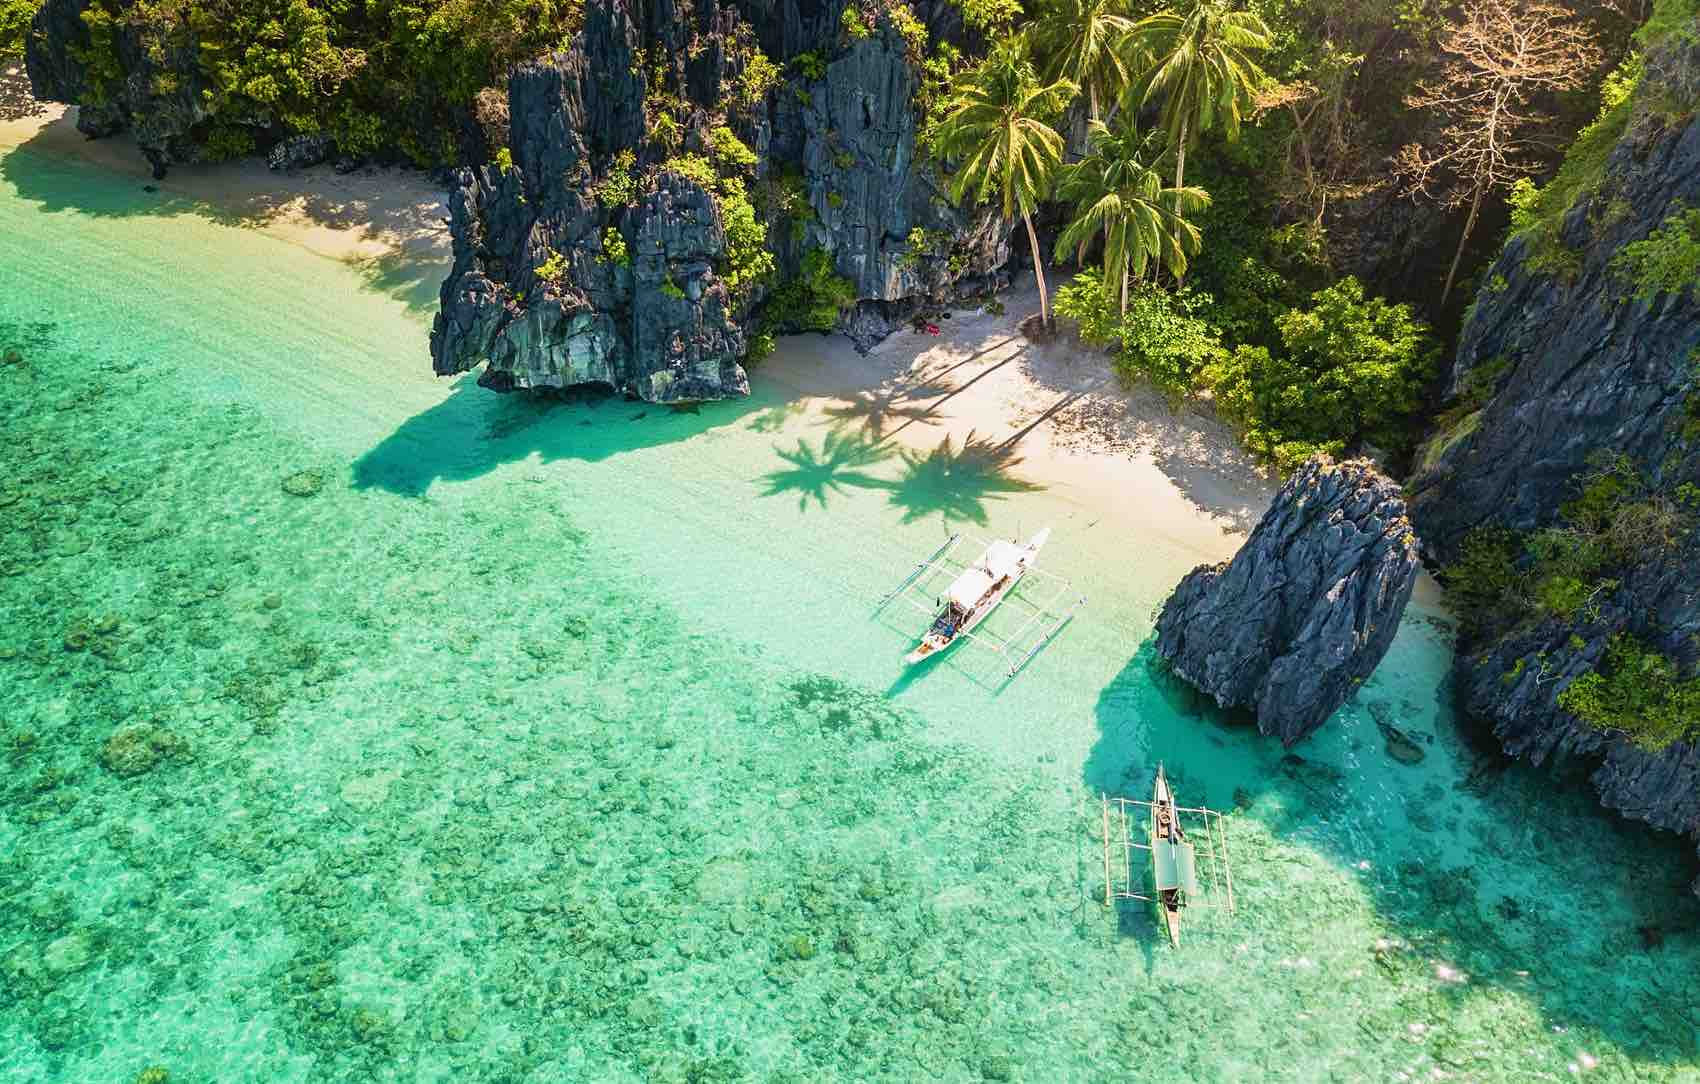 Beach on Entalula Island, one of many islands in the Philippines